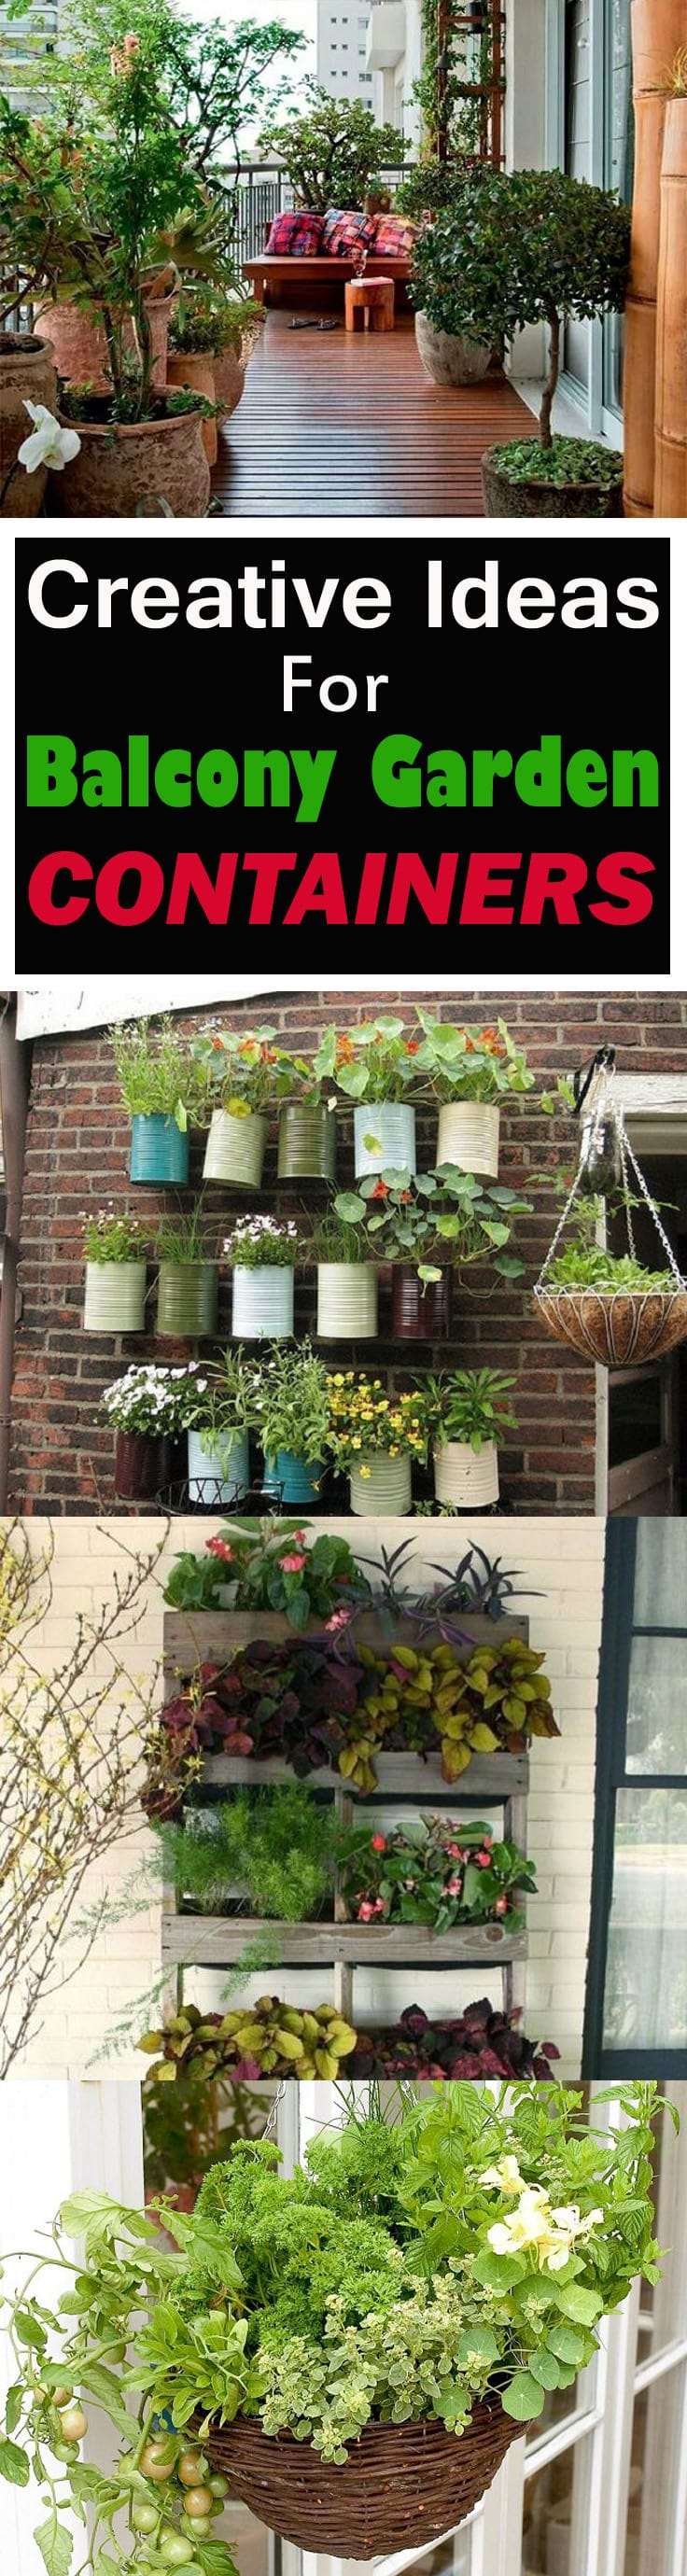 Mesmerizing Balcony Garden Containers Balcony Garden Web Balcony Gardening Ideas If You Have A Balcony It Mean You Ideas garden Balcony Gardening Ideas